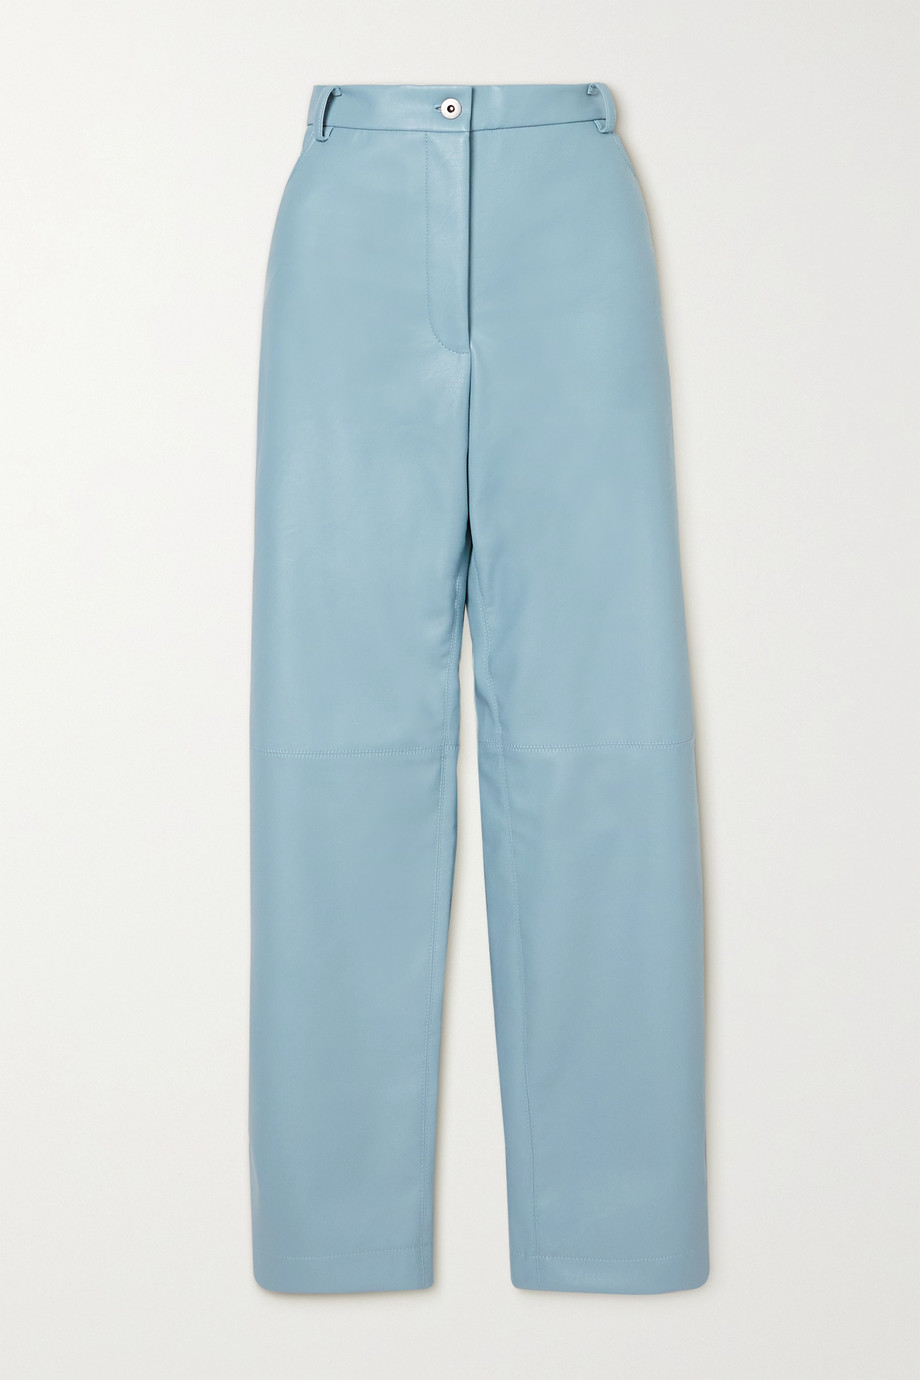 Stella McCartney Hailey vegetarian leather straight-leg pants